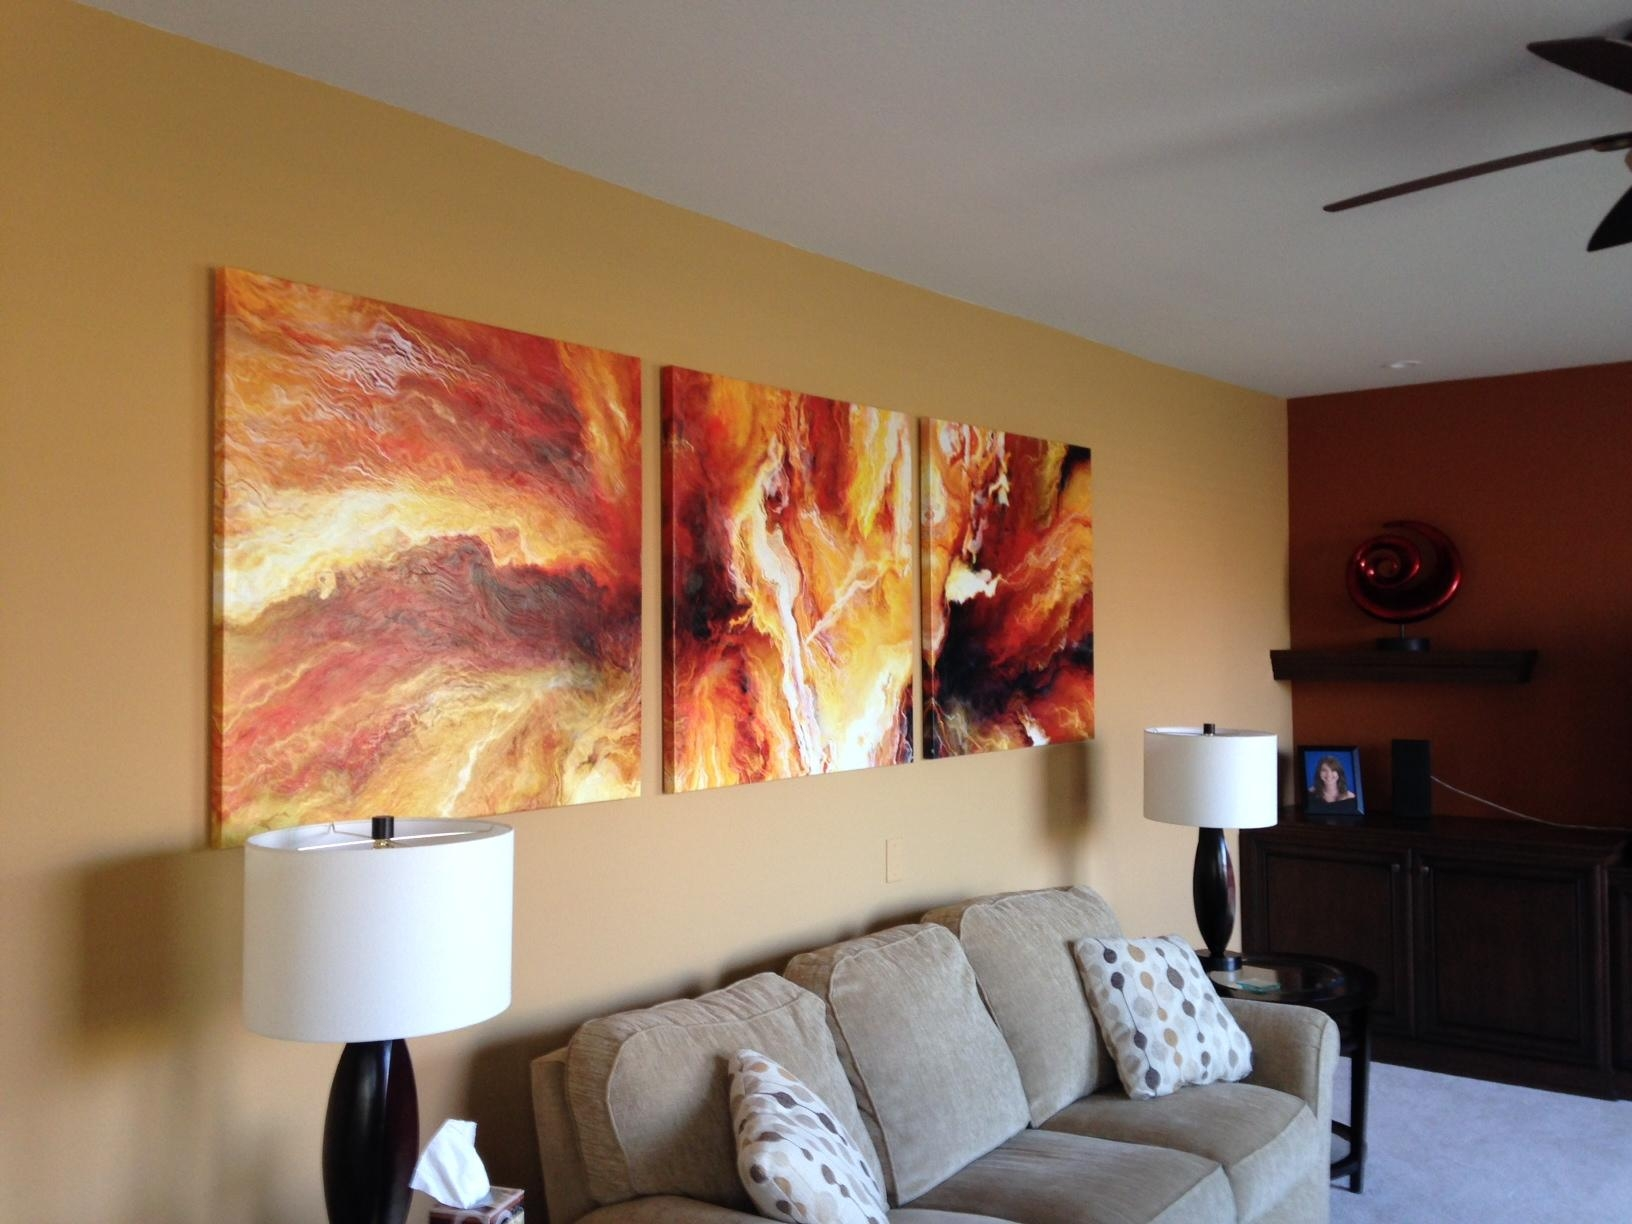 Panel Large Abstract Painting Art Canvas Print Triptych Living Room Within Triptych Art For Sale (Image 9 of 20)